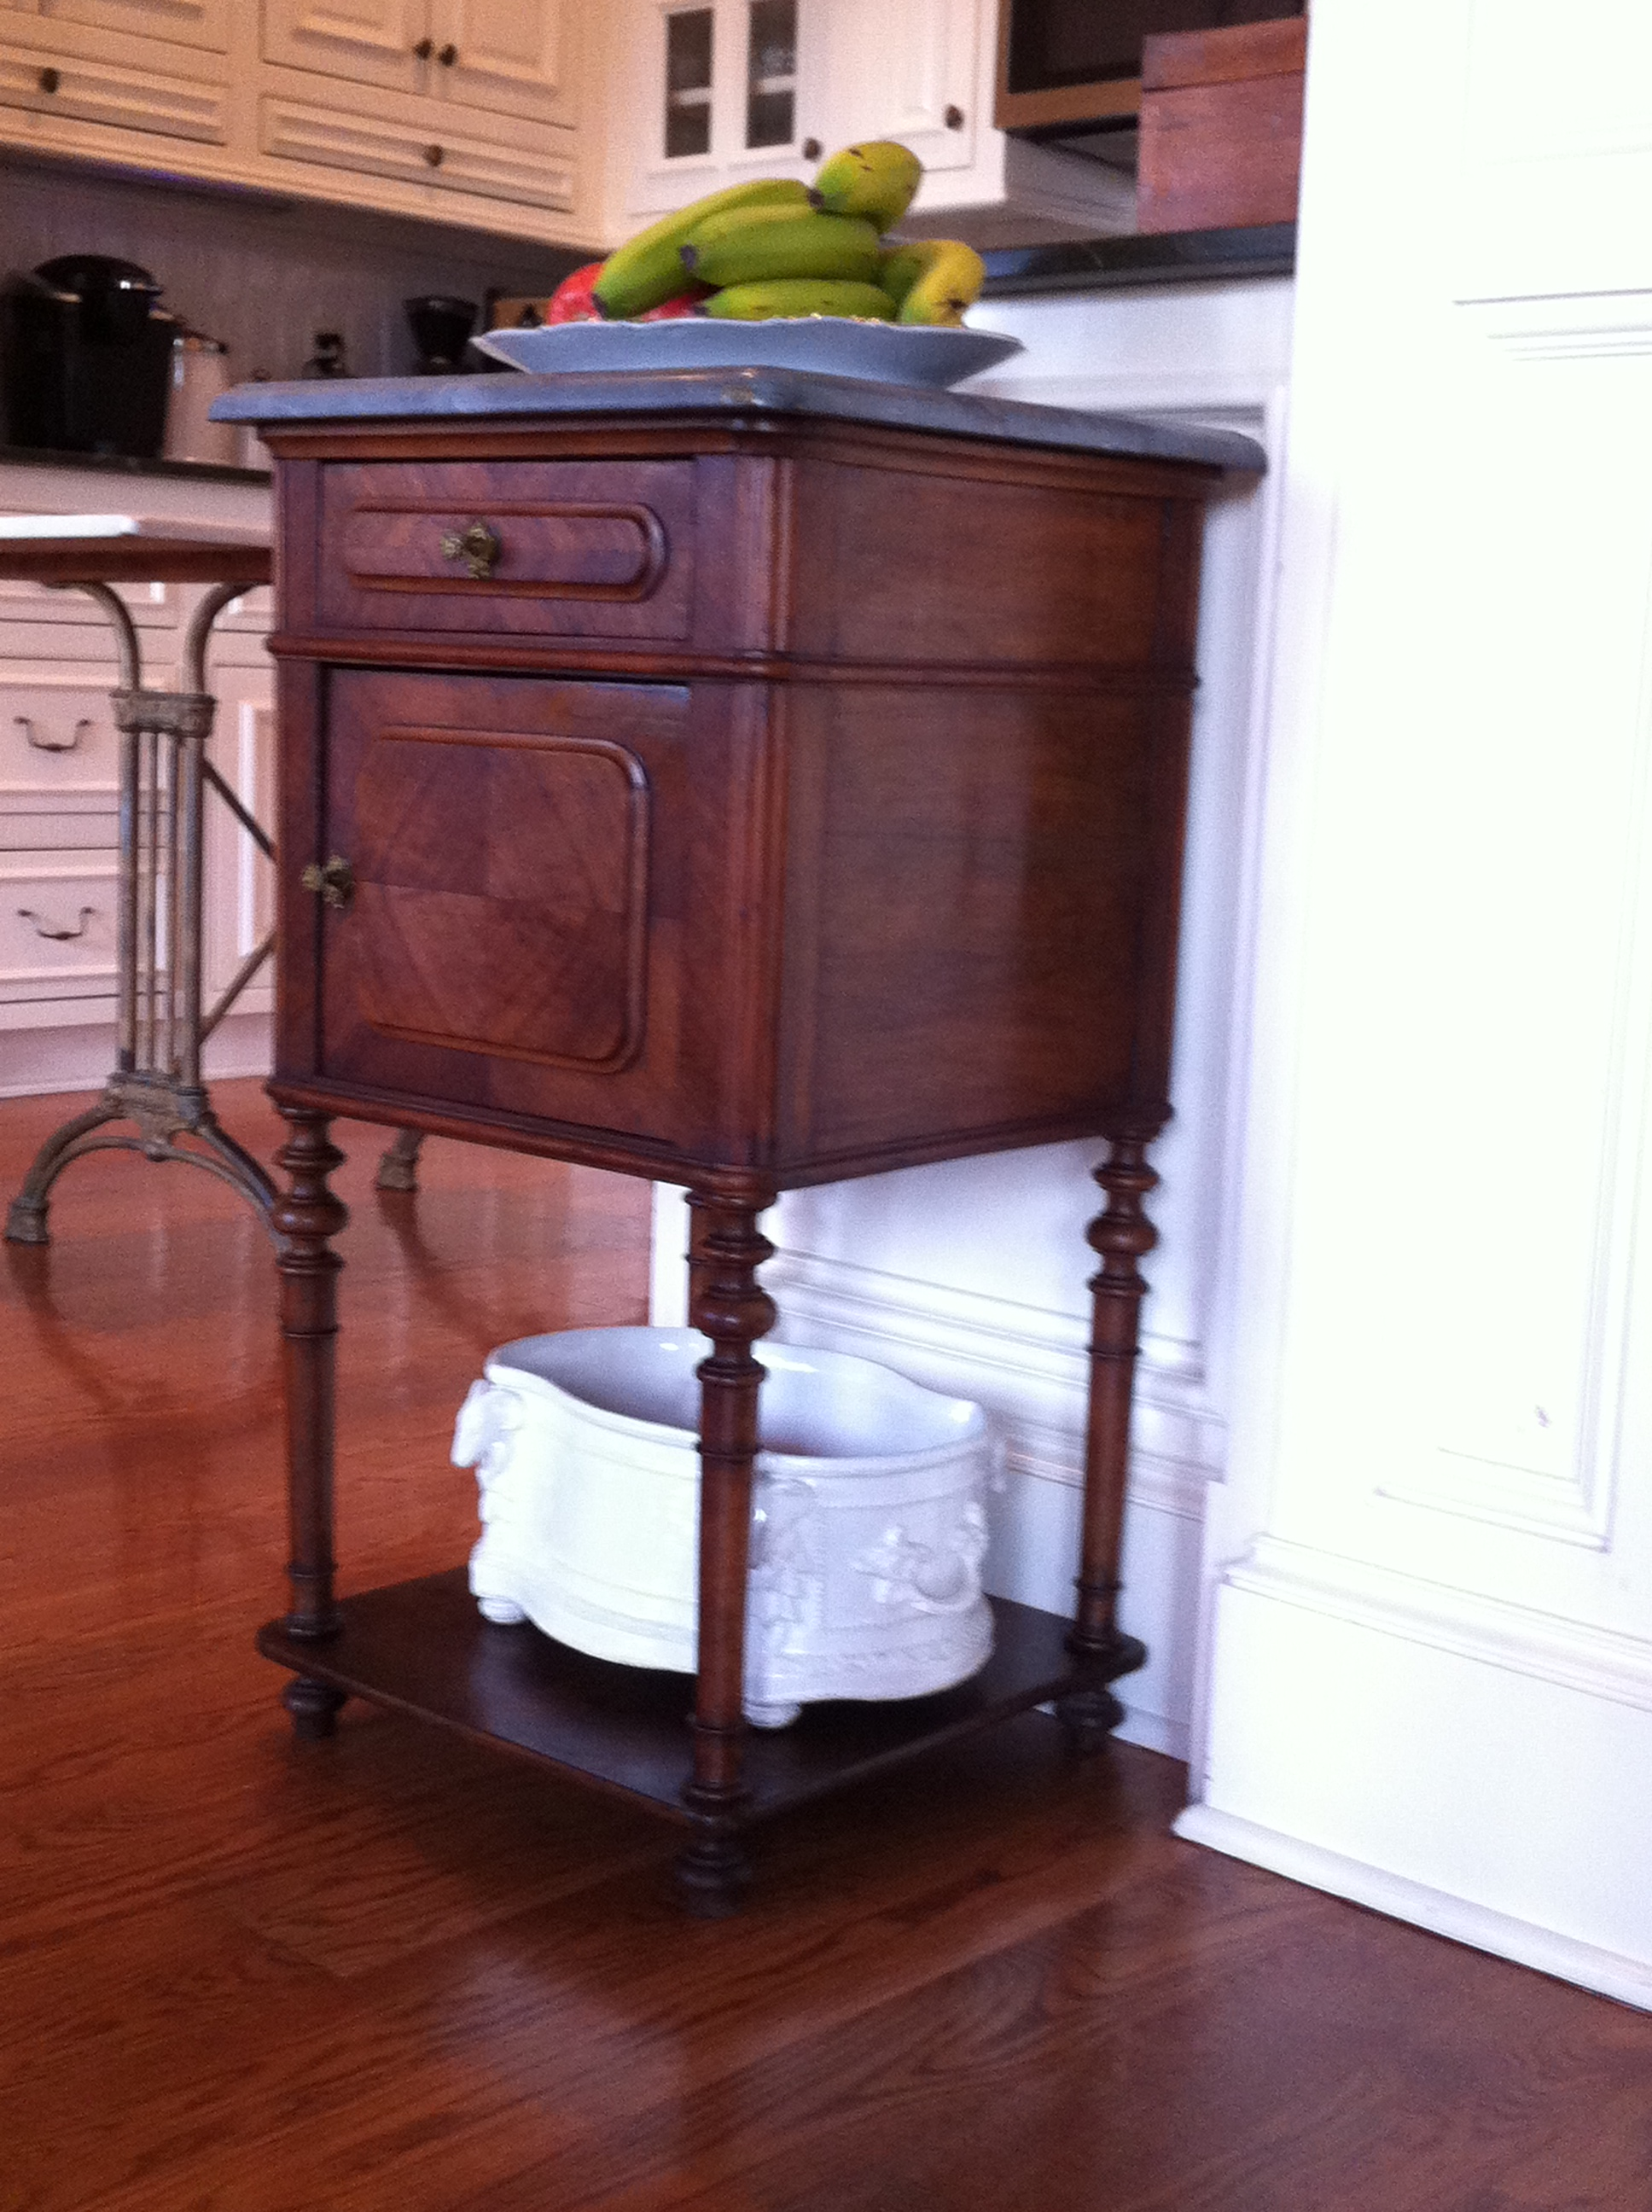 Repurposed Antique Furniture: French nightstand in the kitchen